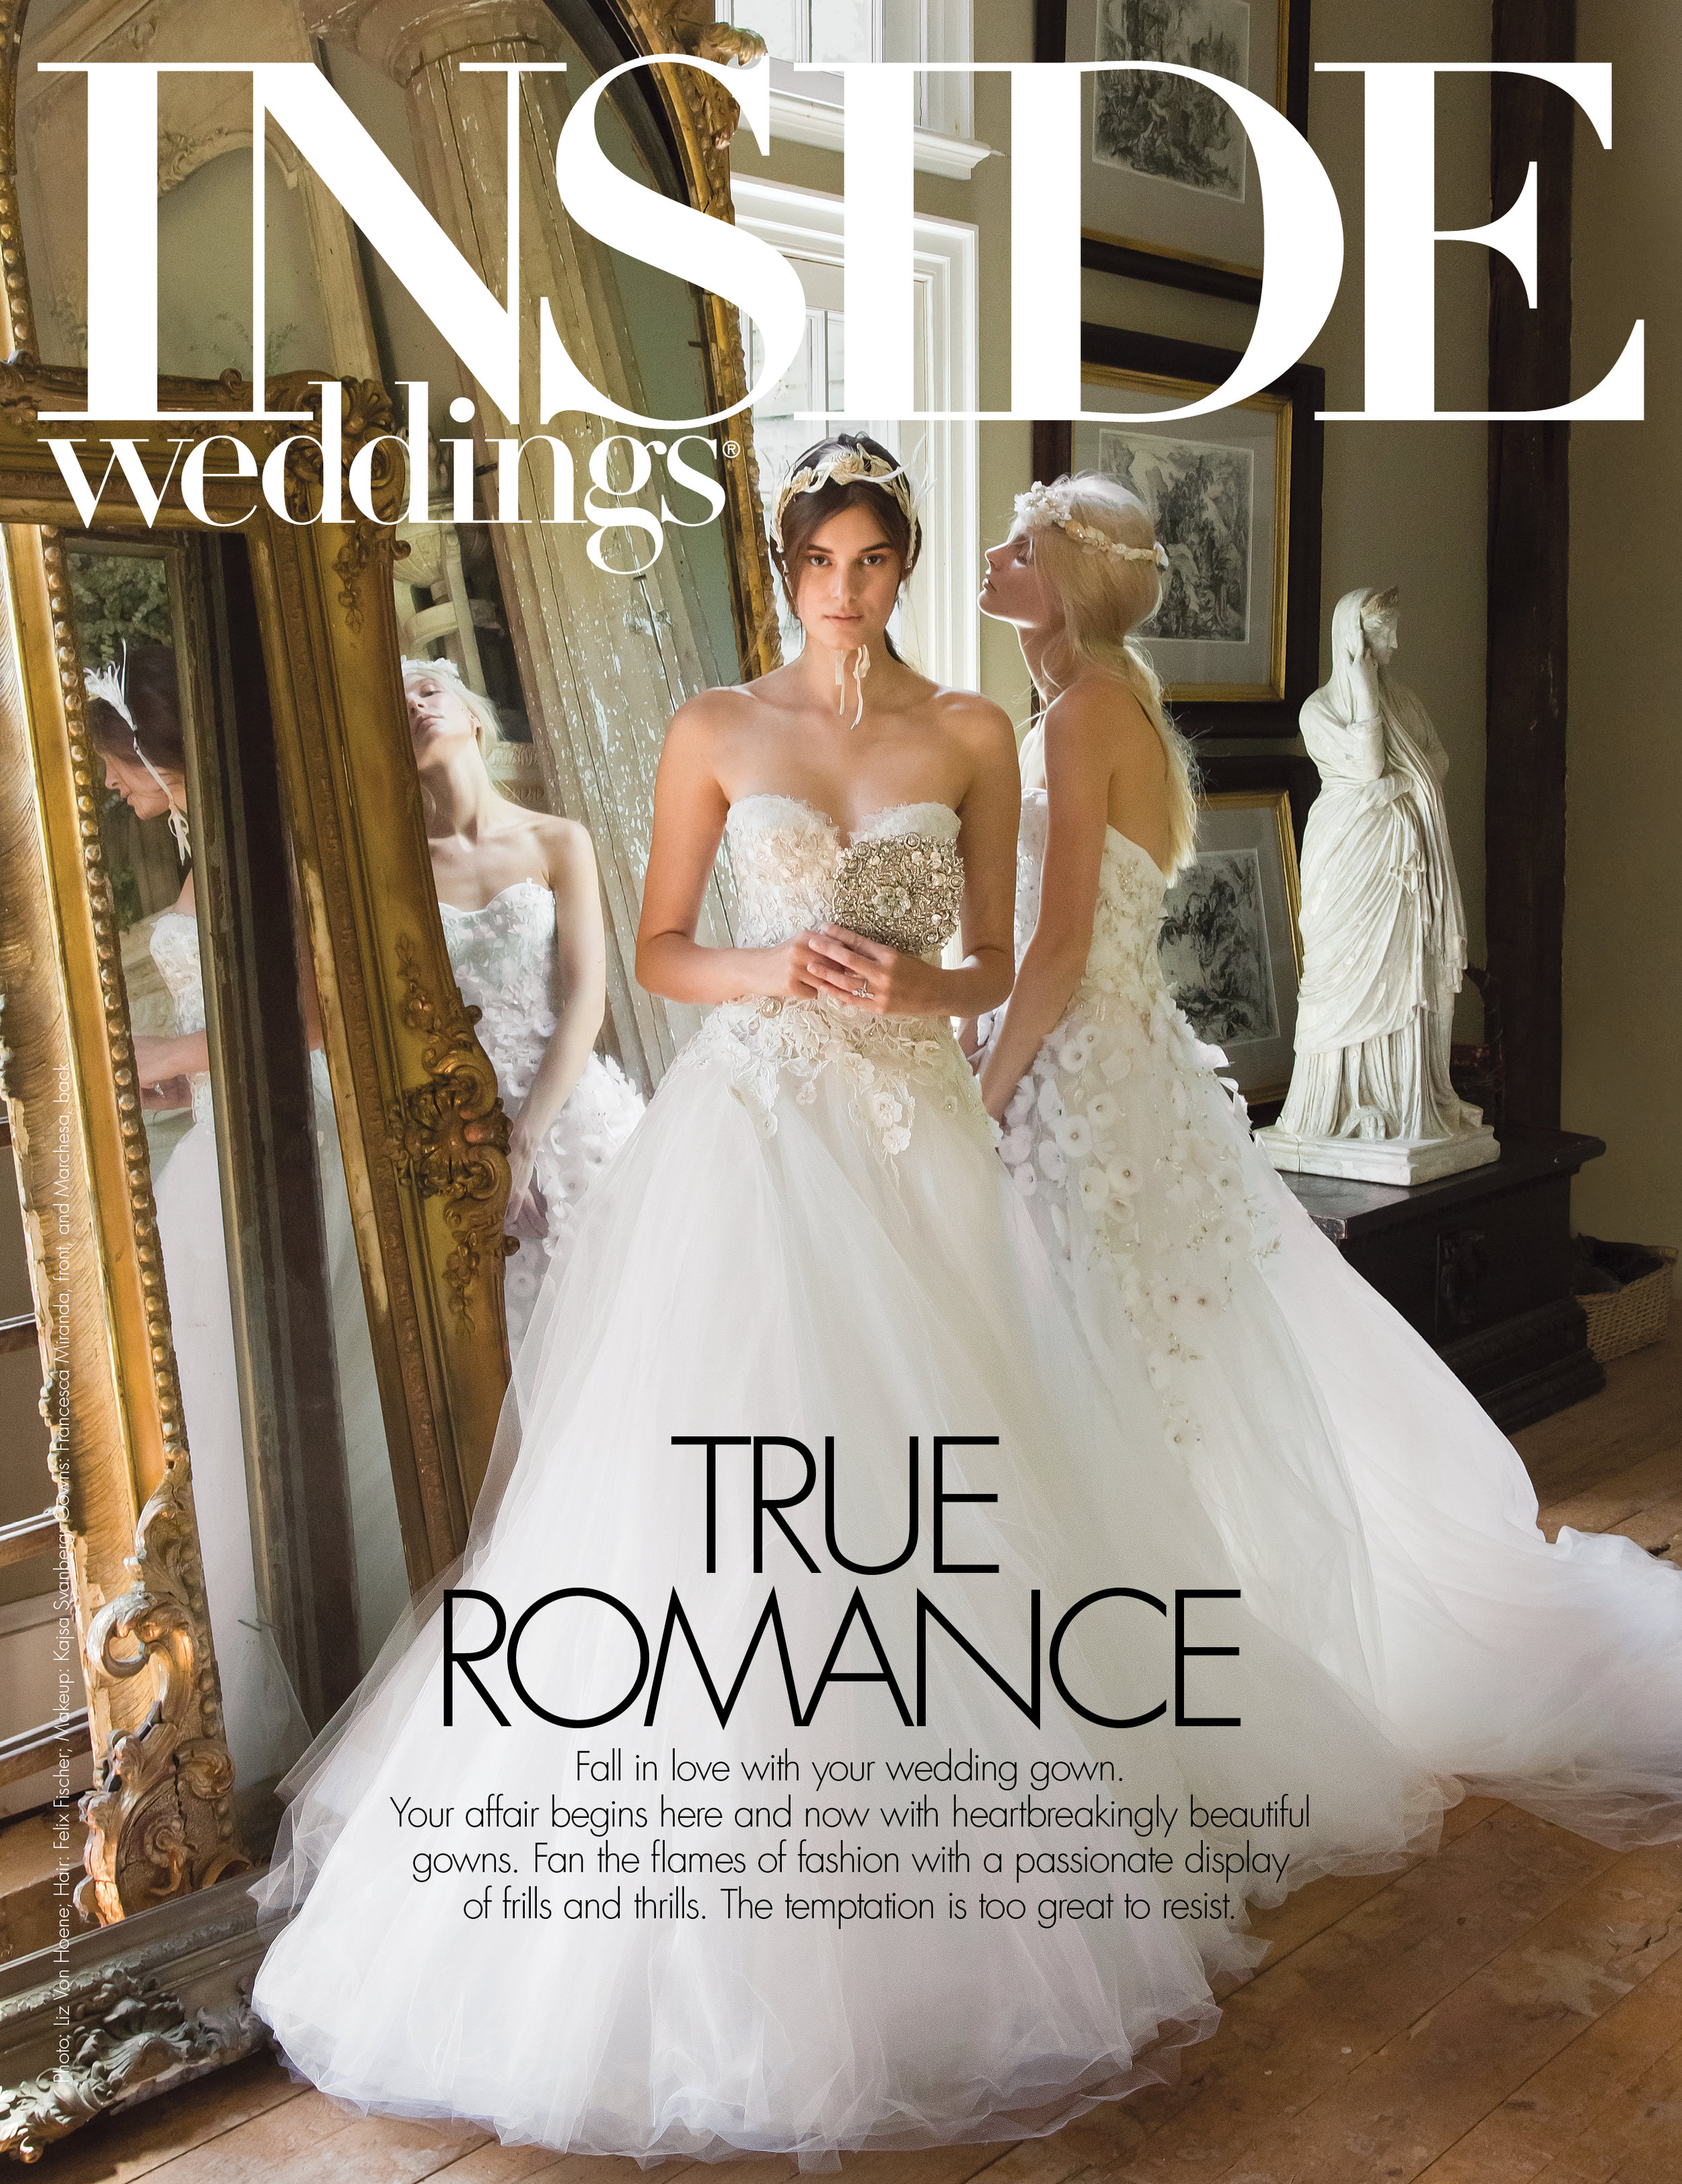 copywriting / inside weddings magazine